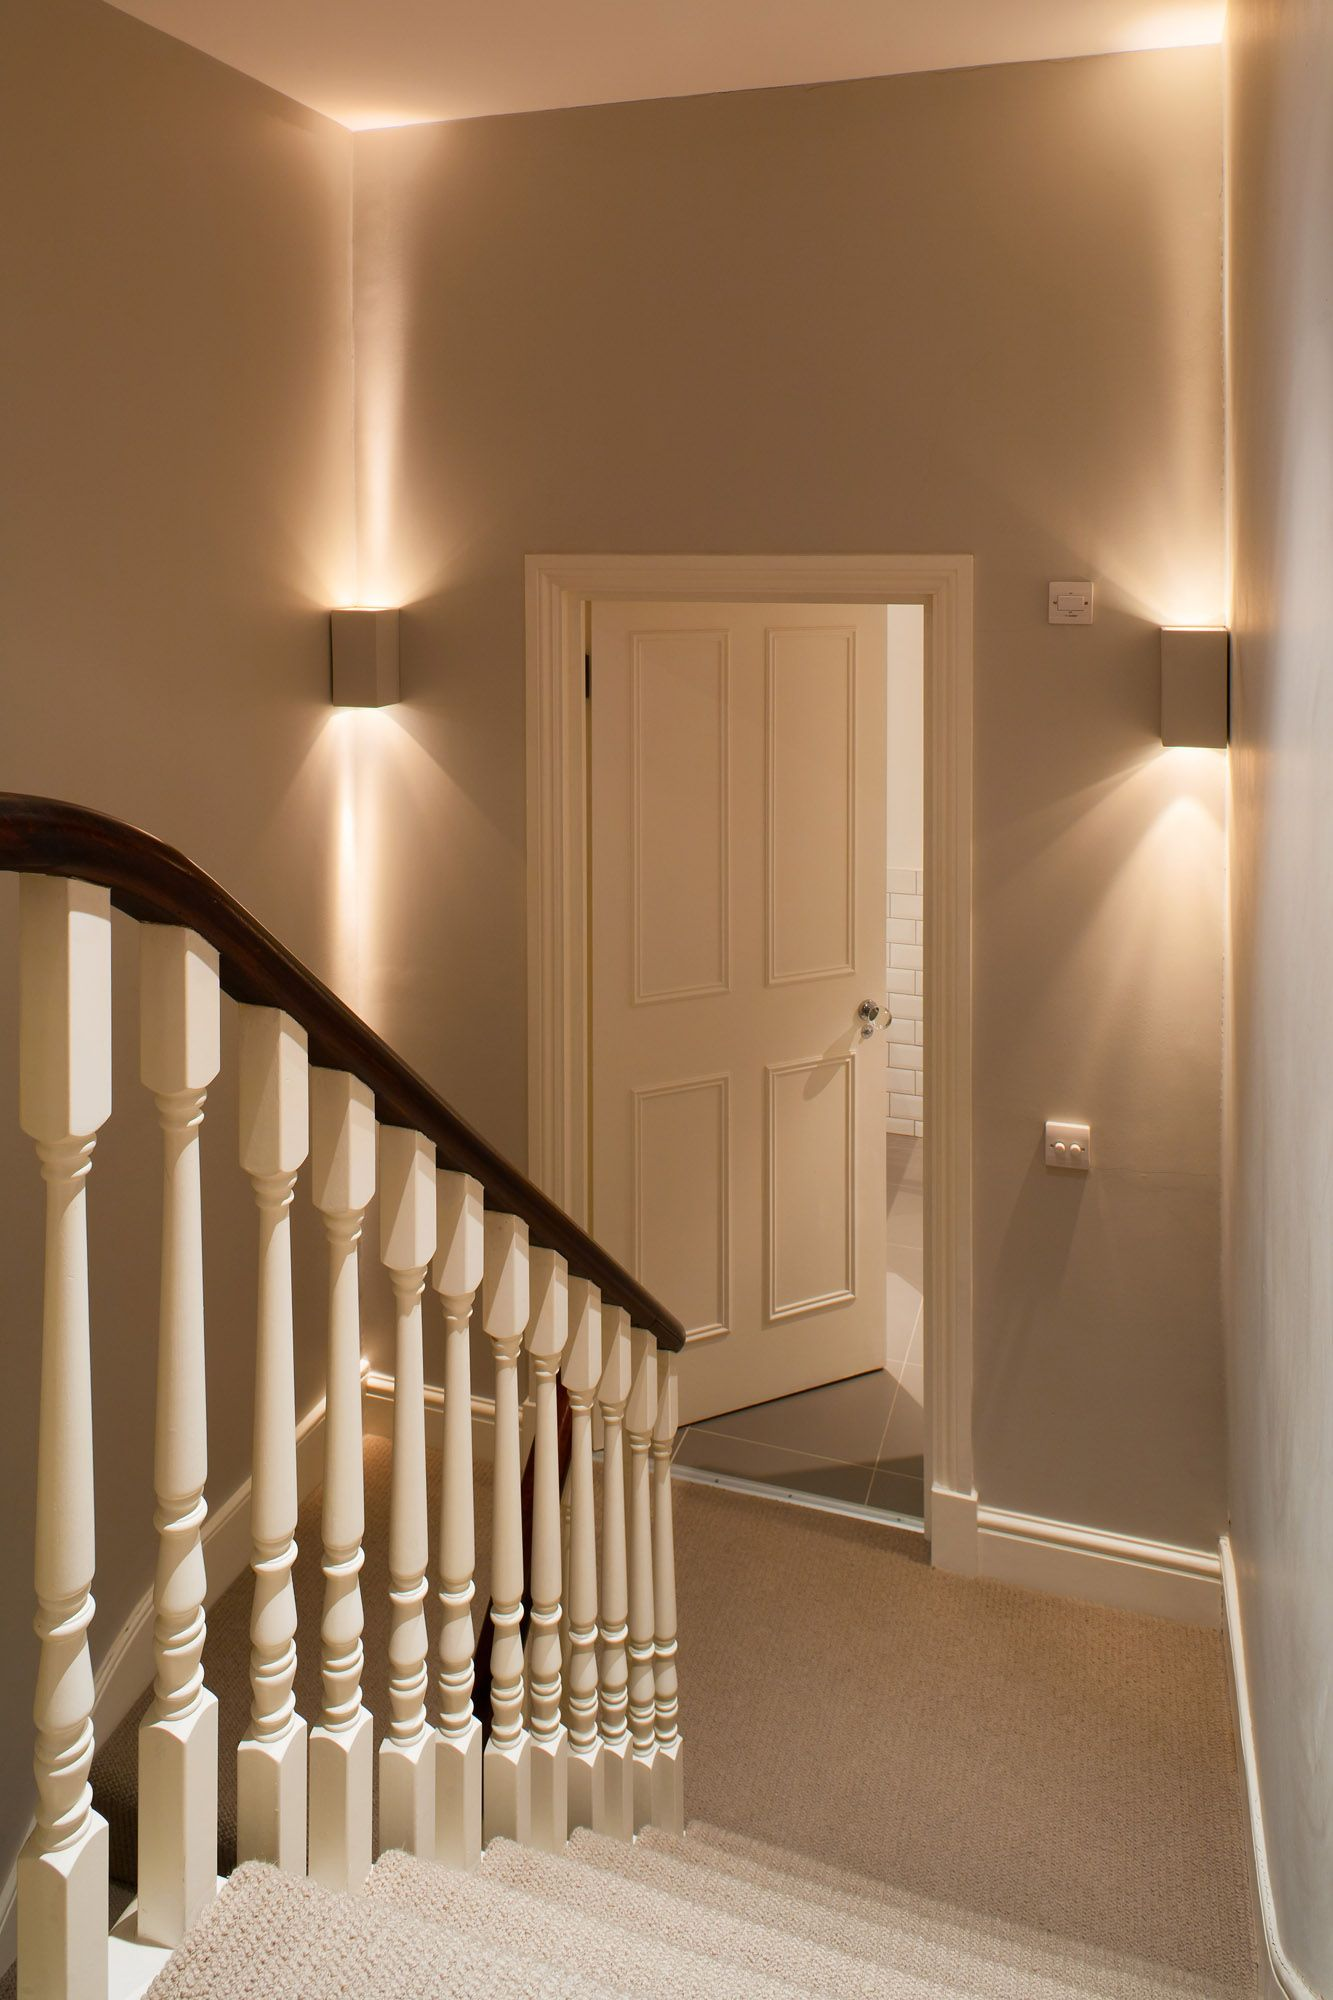 80 Corridor Hall And Stair Lighting Examples Staircase Wall